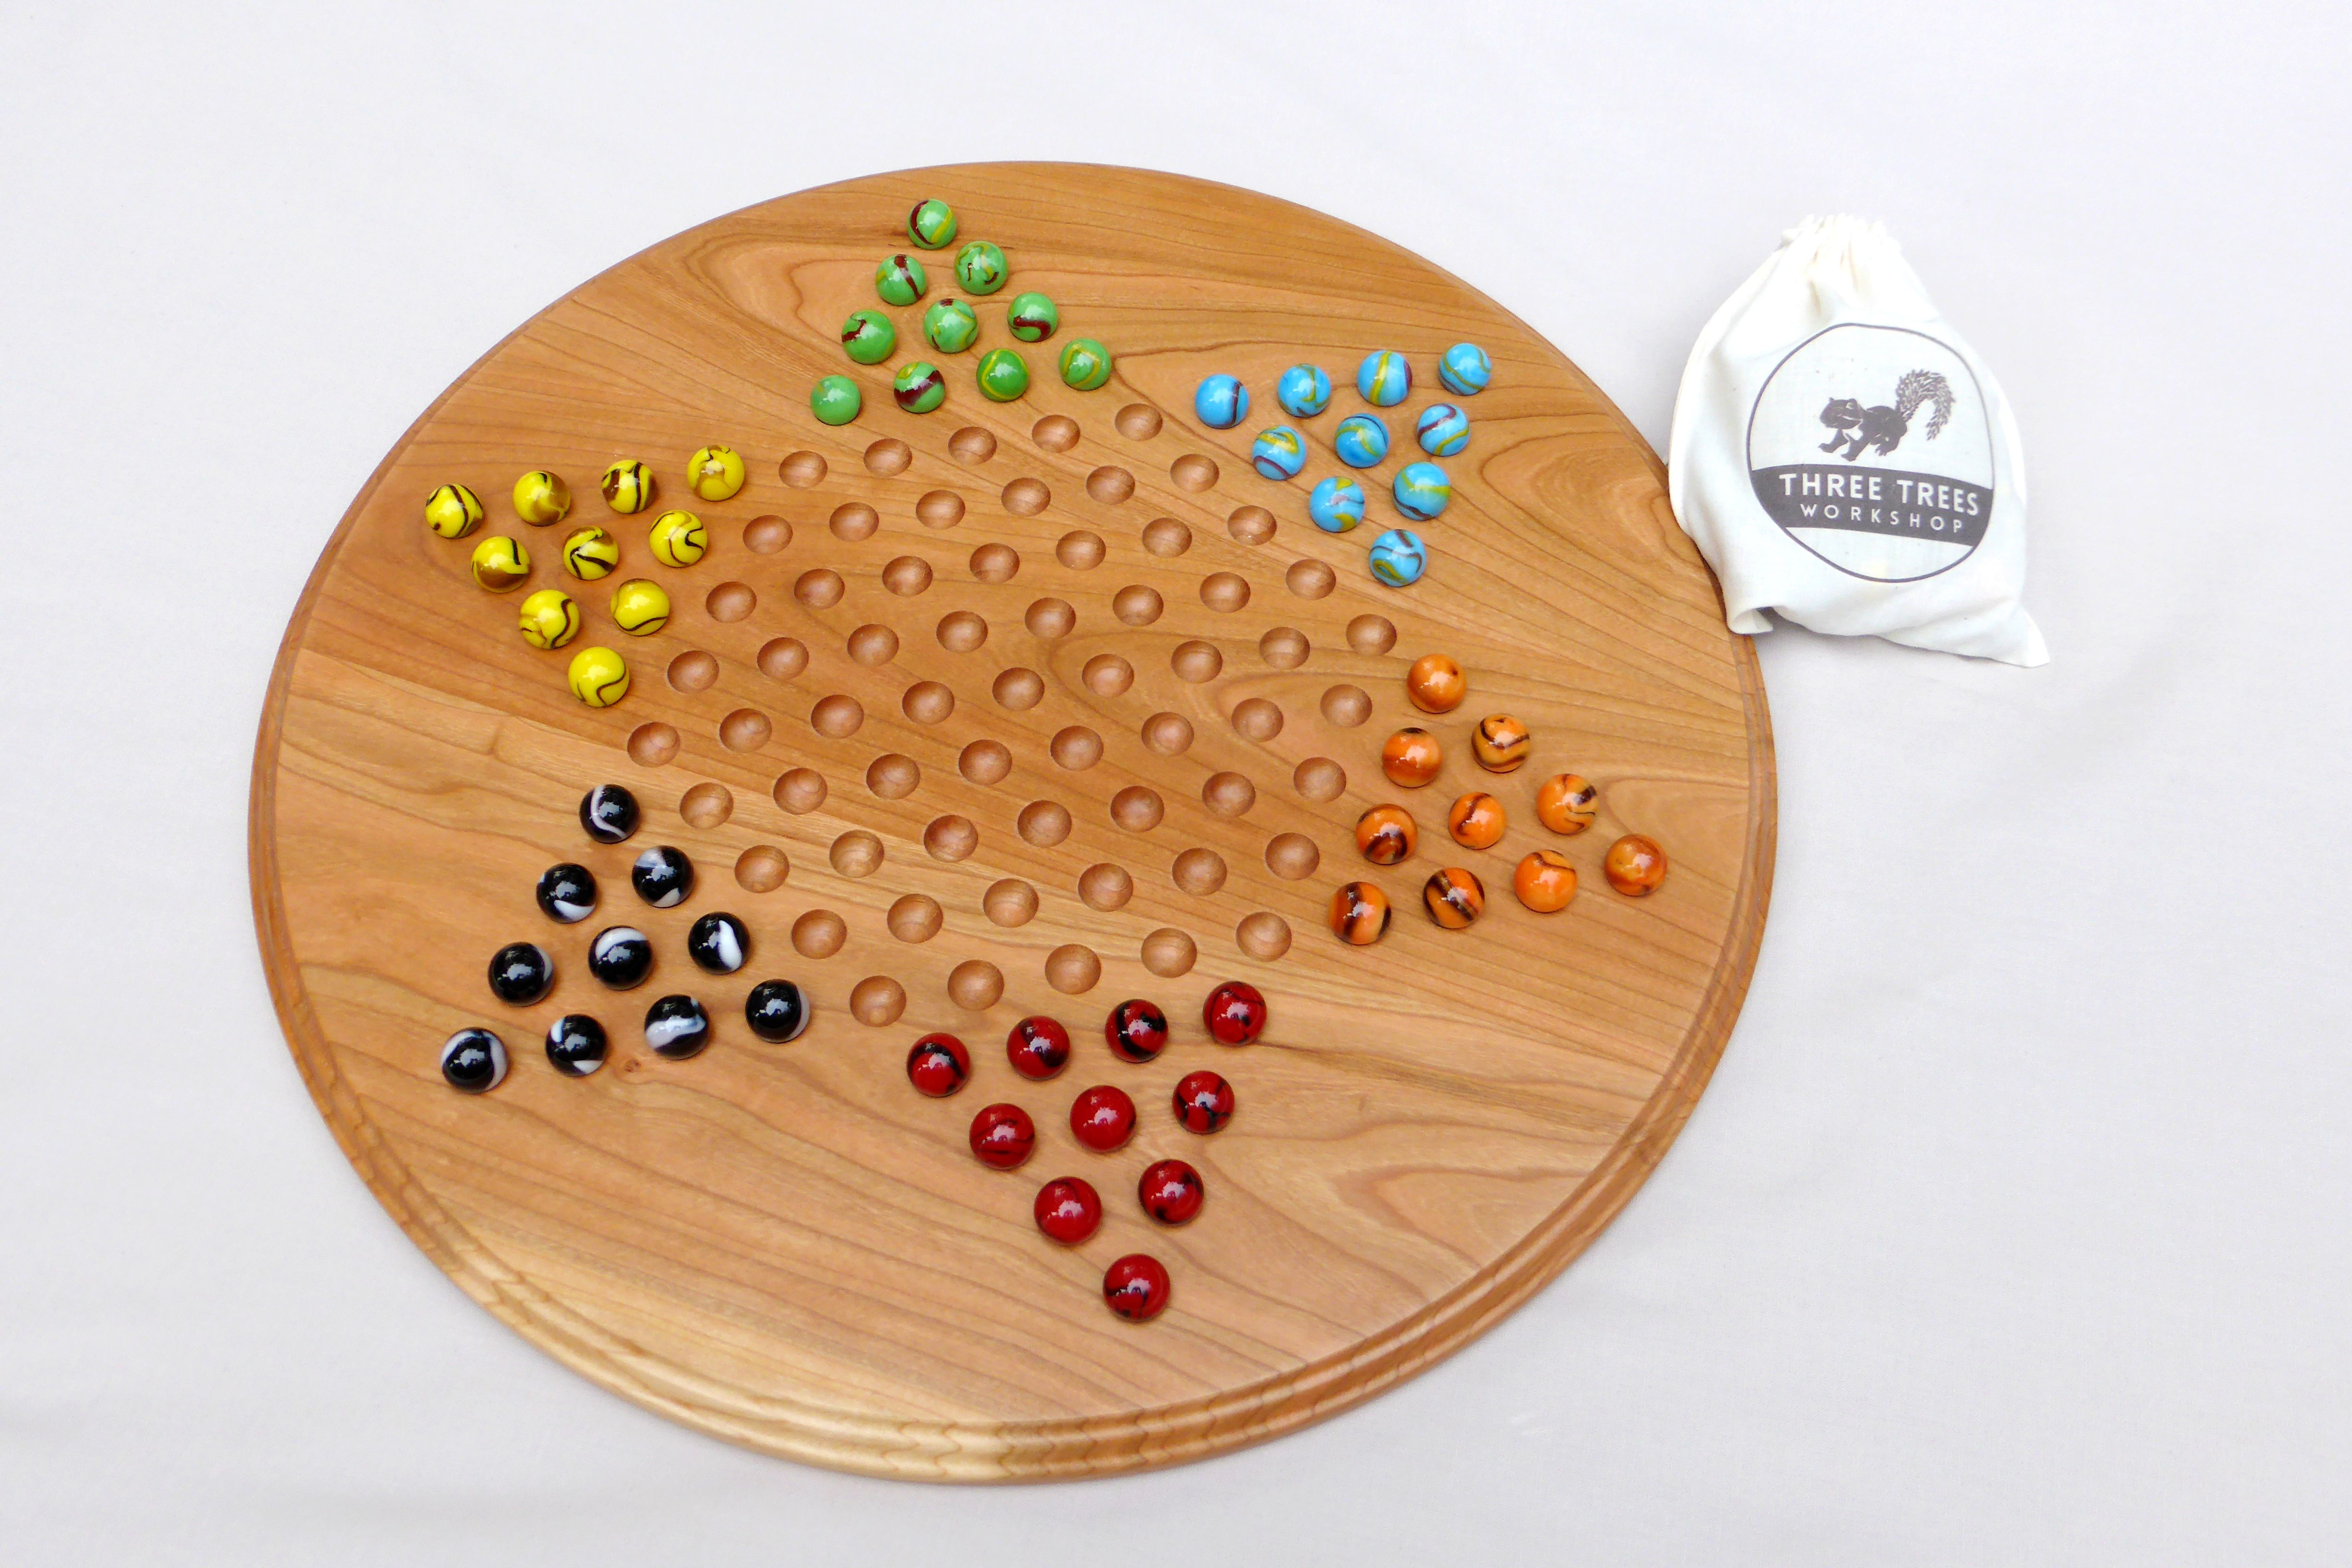 Buy Hand Made Chinese Checkers Game Board With Marbles Made To